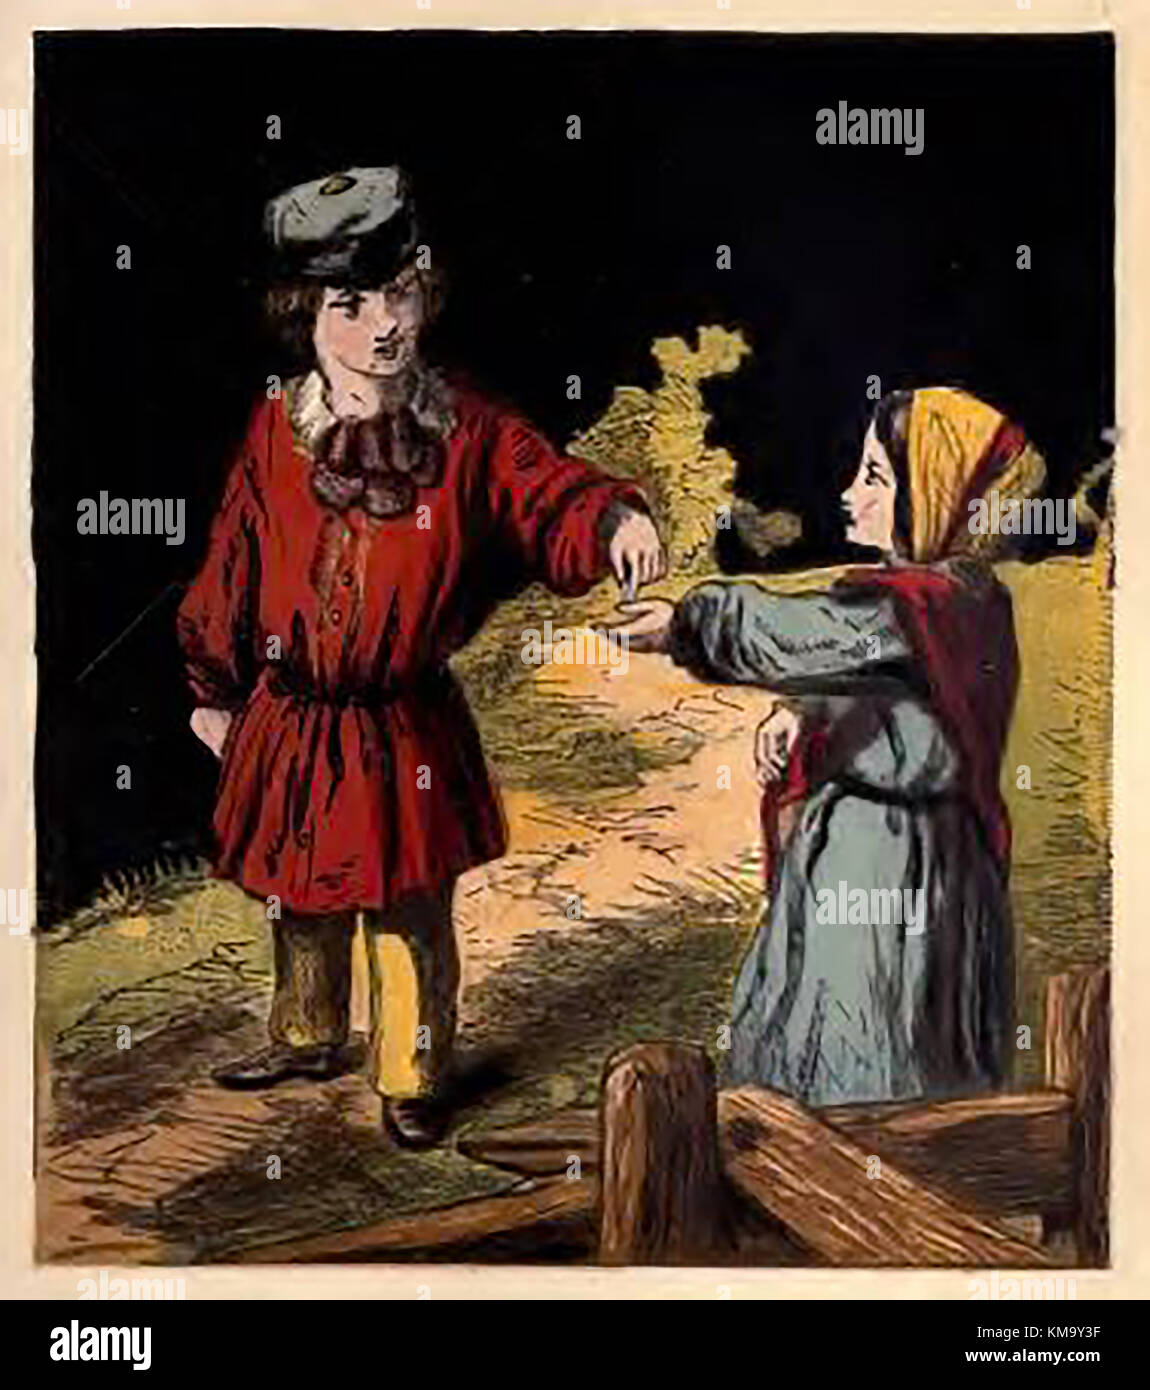 Illustration from a Victorian children's coloured book of occupations and pastimes. A child giving money to - Stock Image